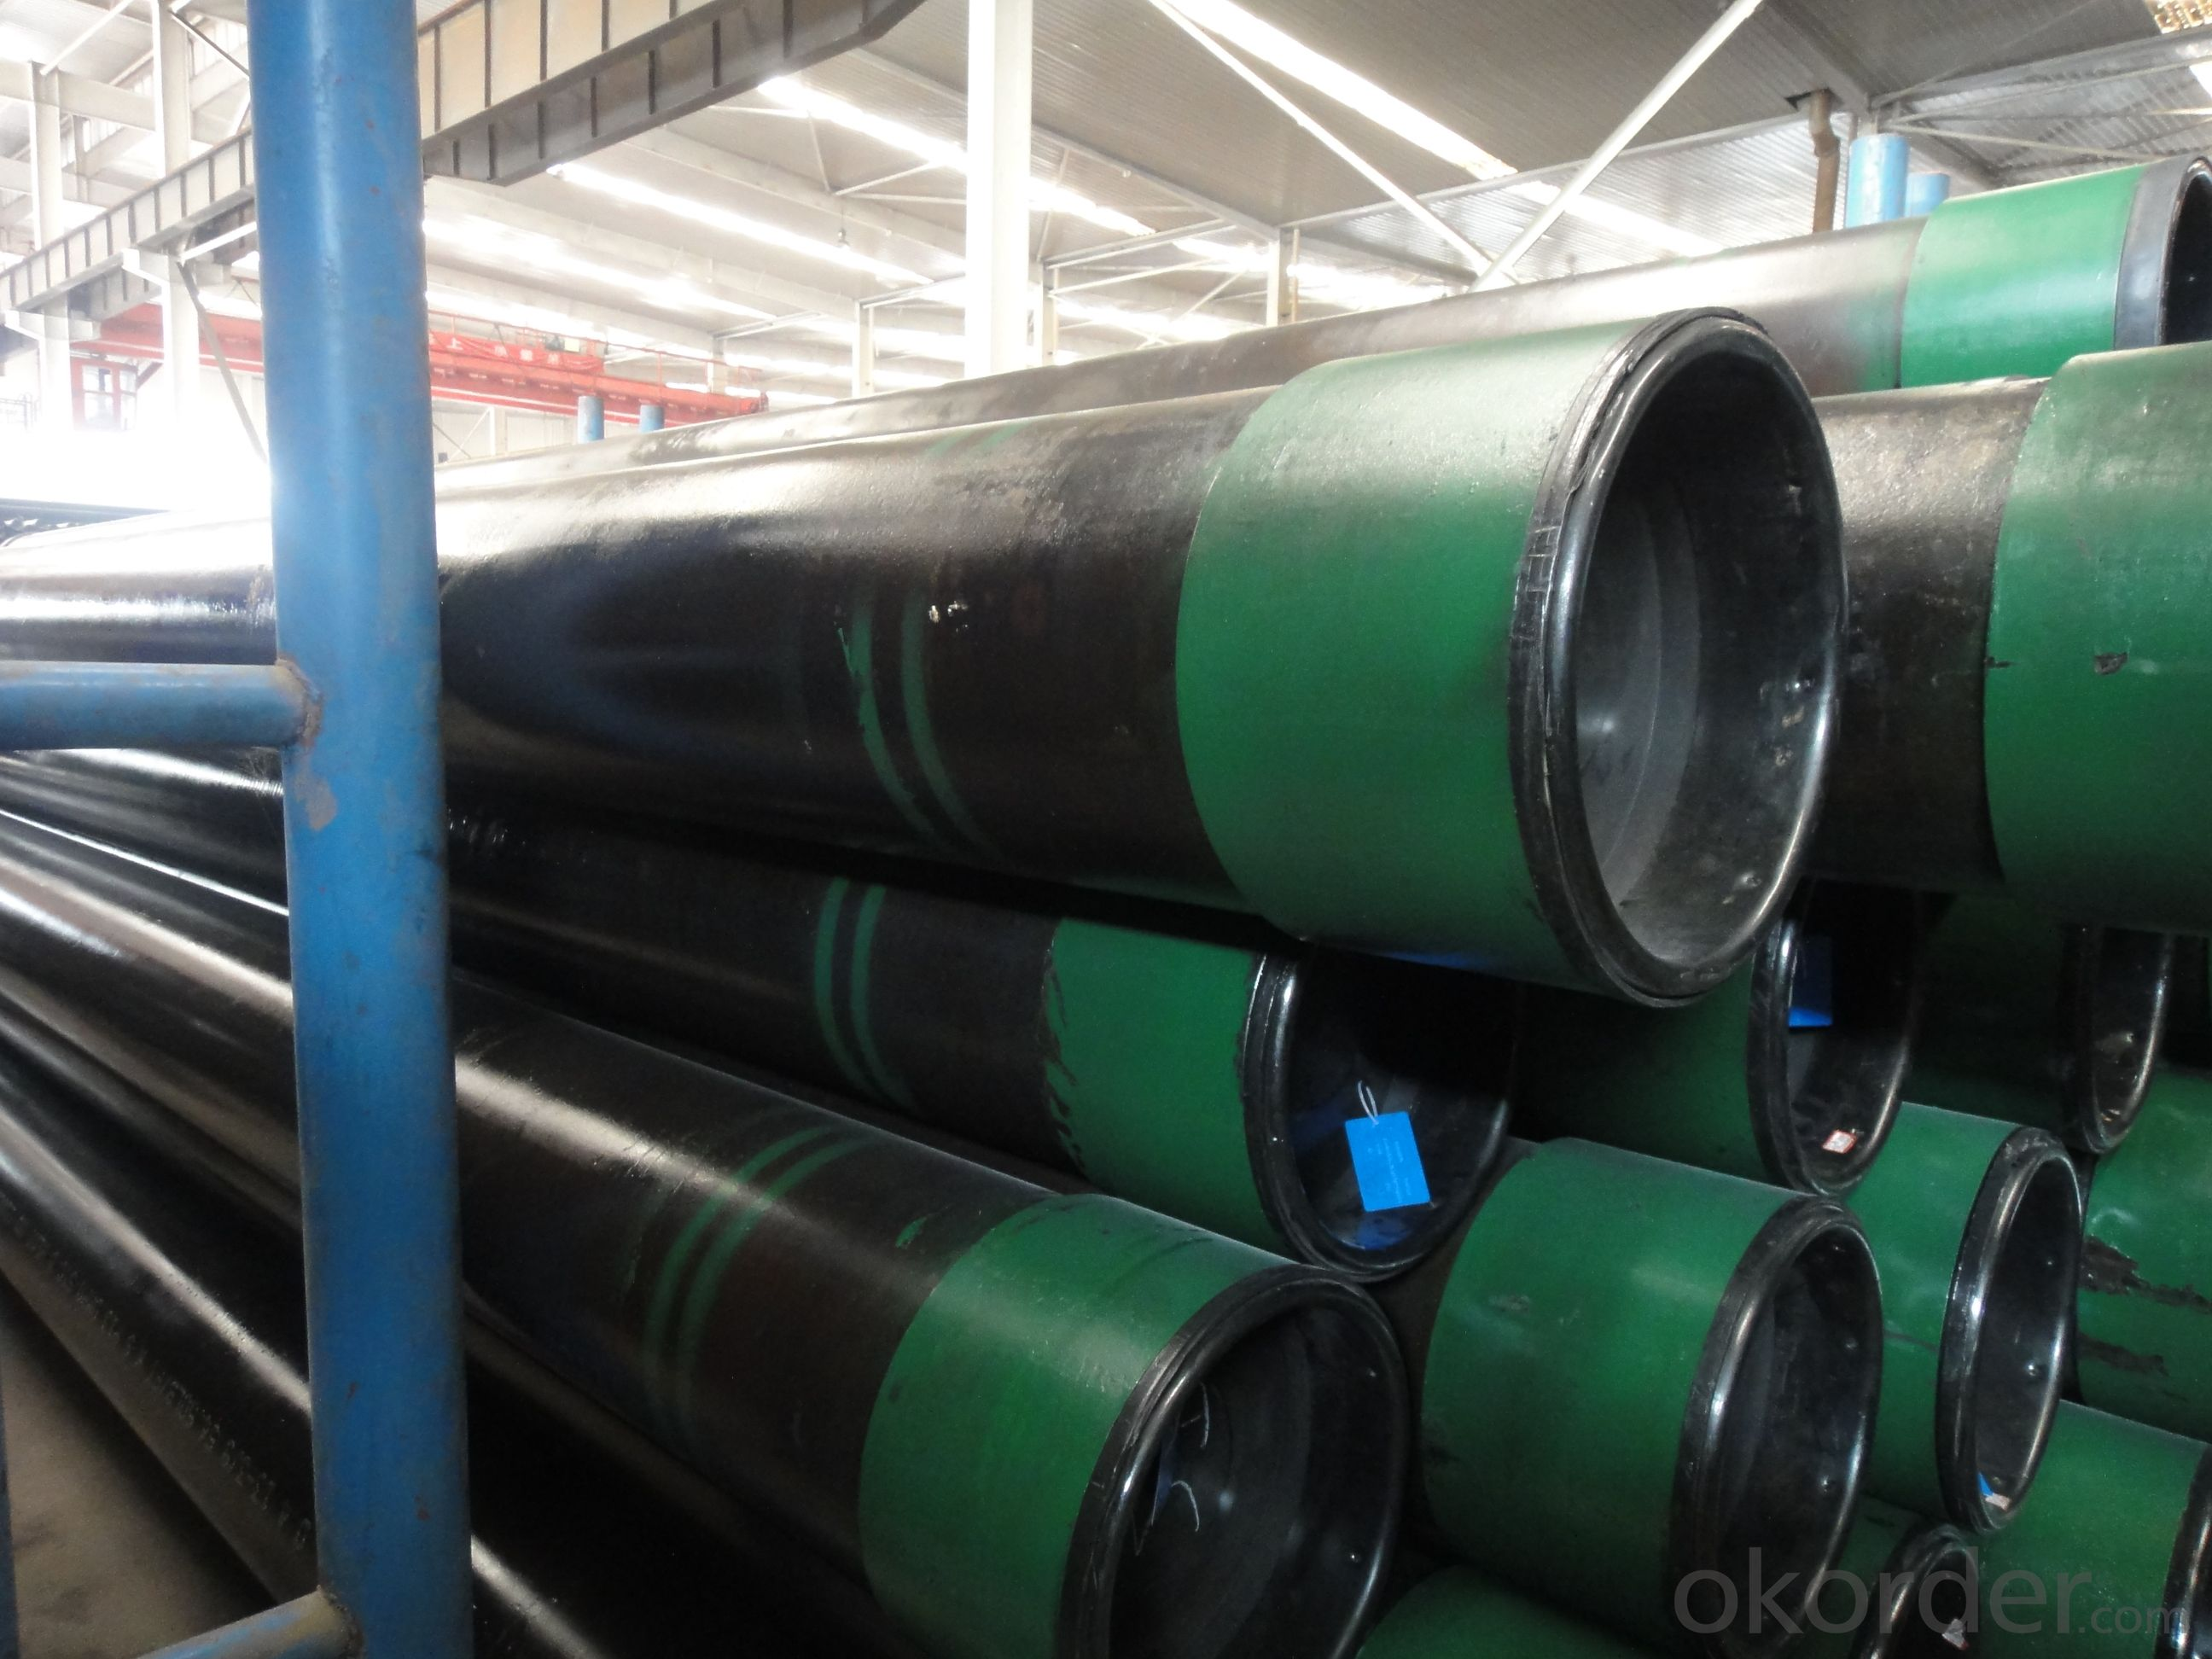 API Spec 5CT J55 K55 N80 Casing pipe seamless steel pipe for Use as Oil Casing and Tubing for well